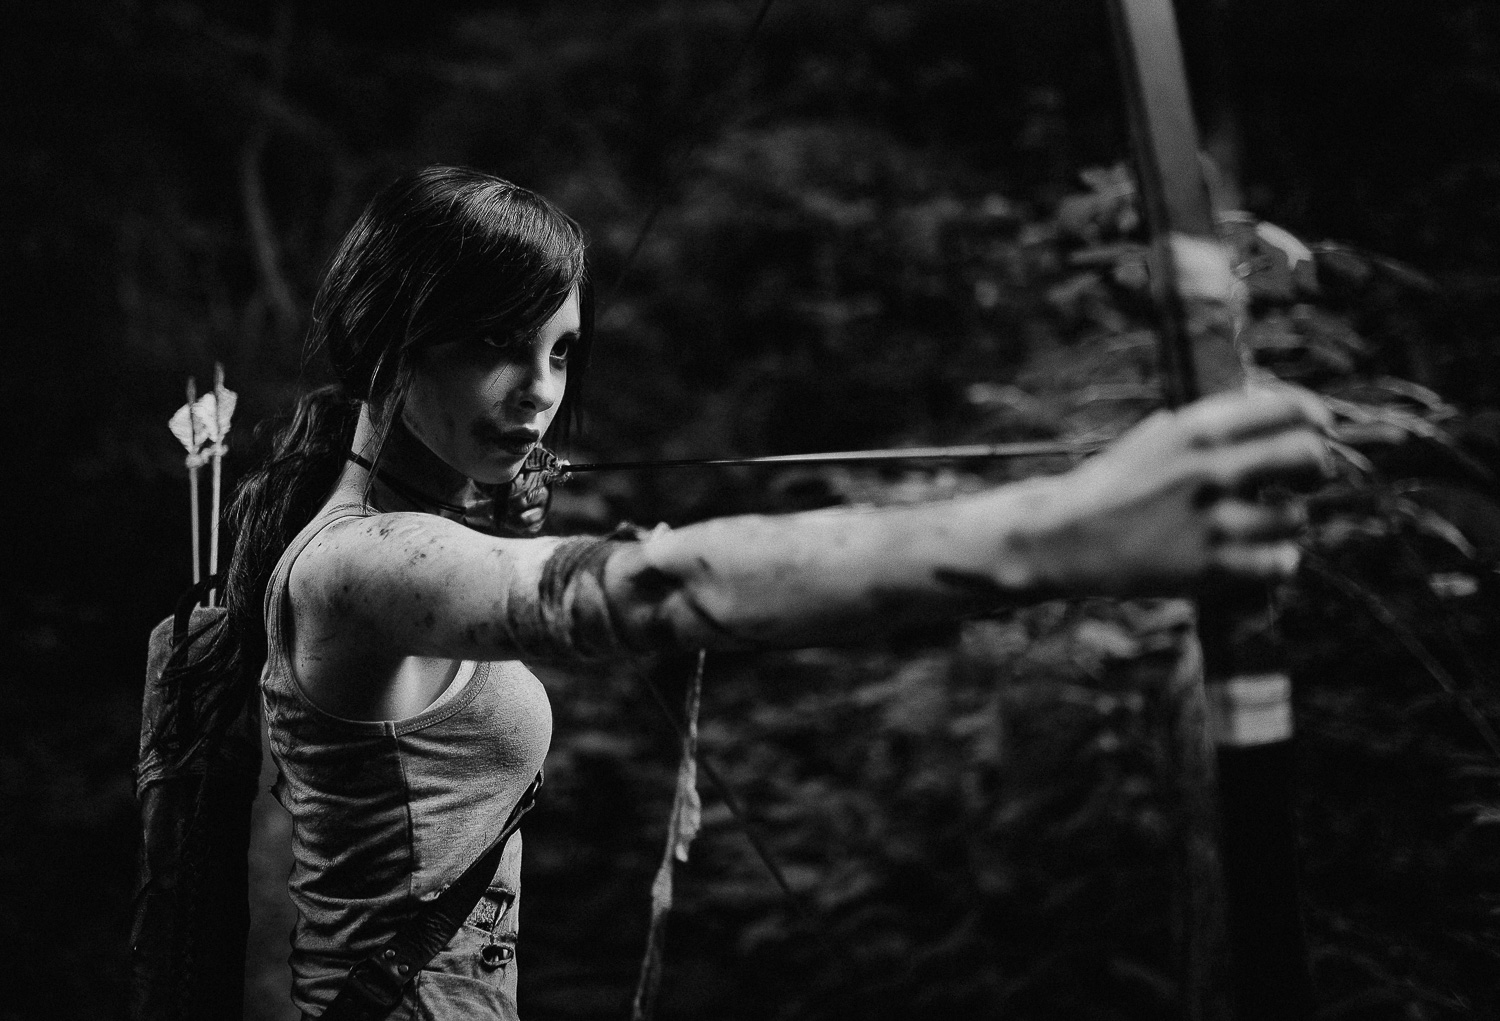 Tomb-Raider-Lara-Croft-Cosplay-53.jpg